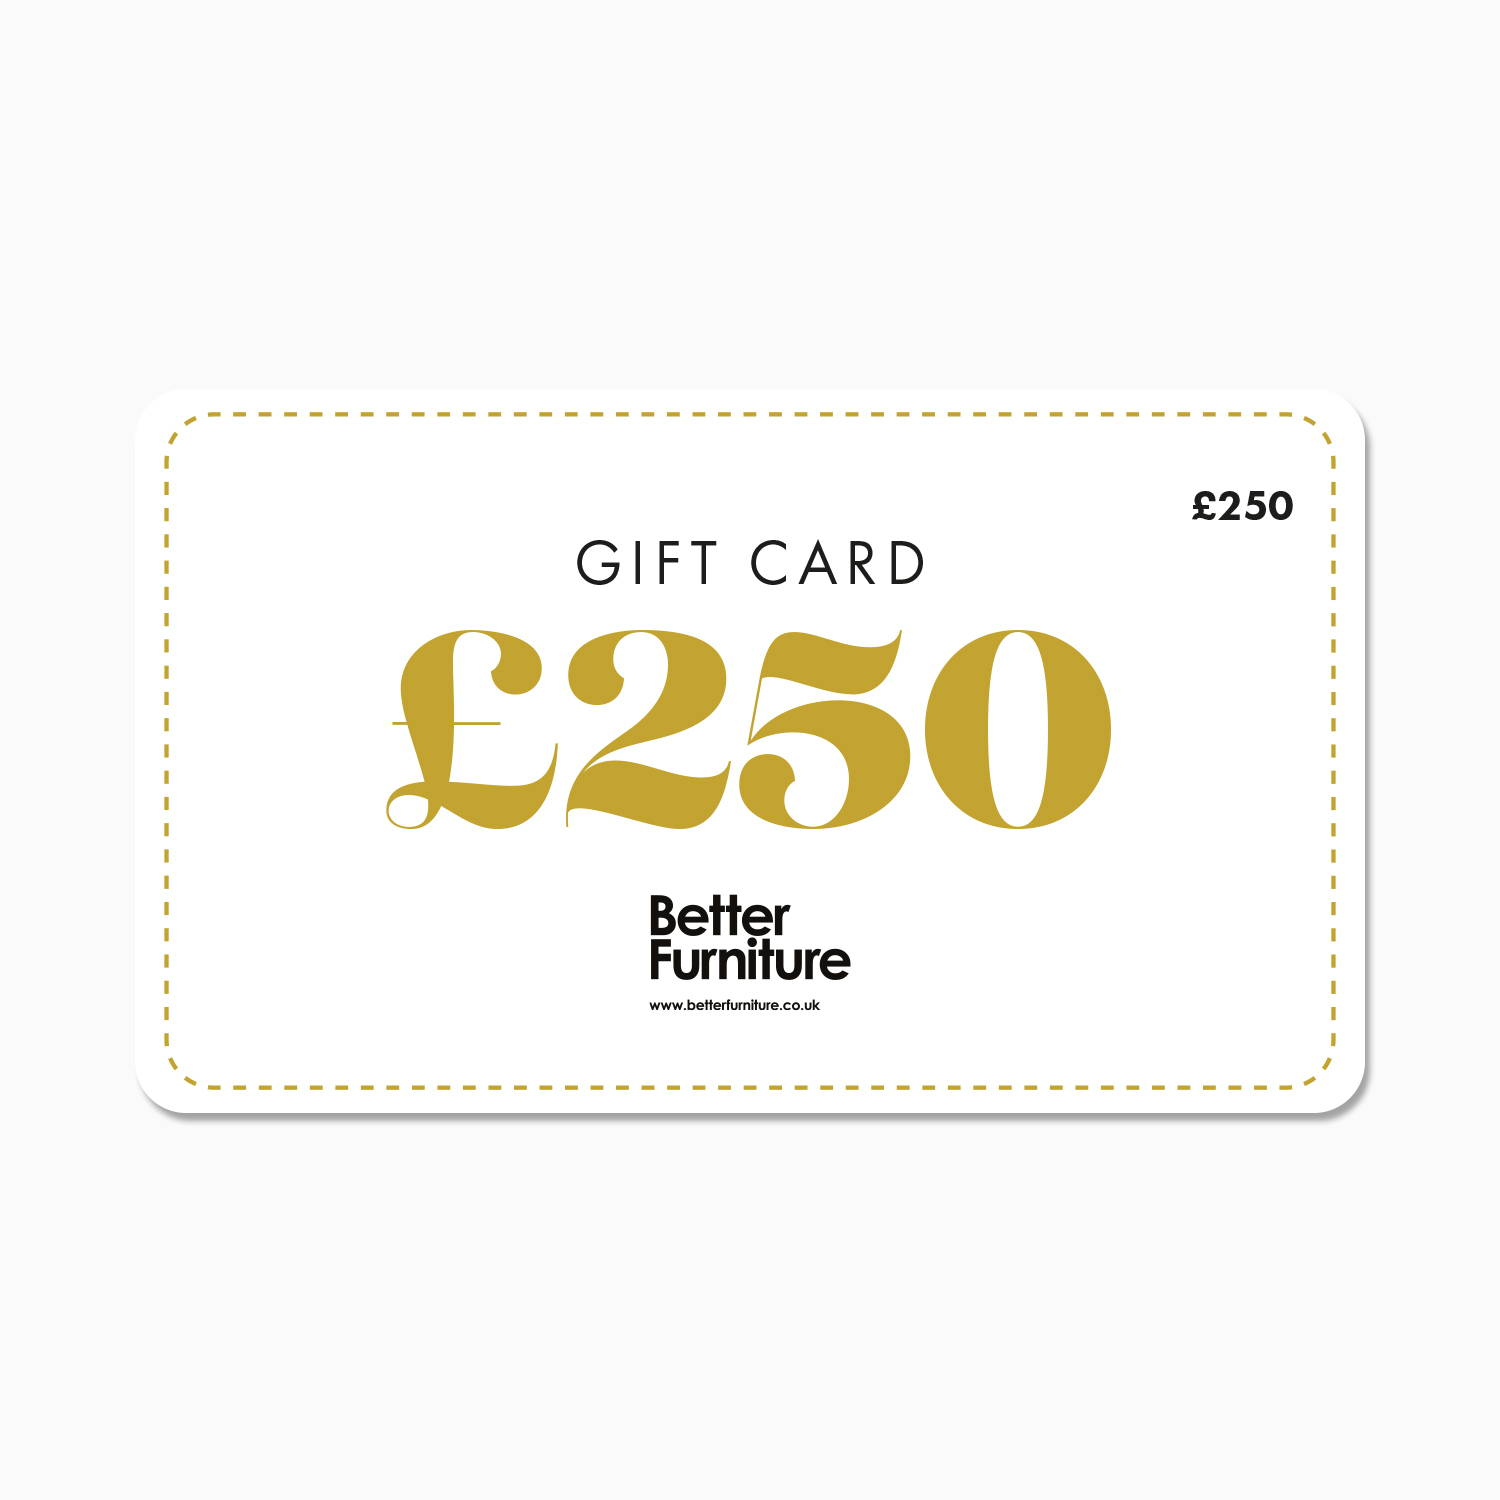 £250 Better Furniture Gift Card